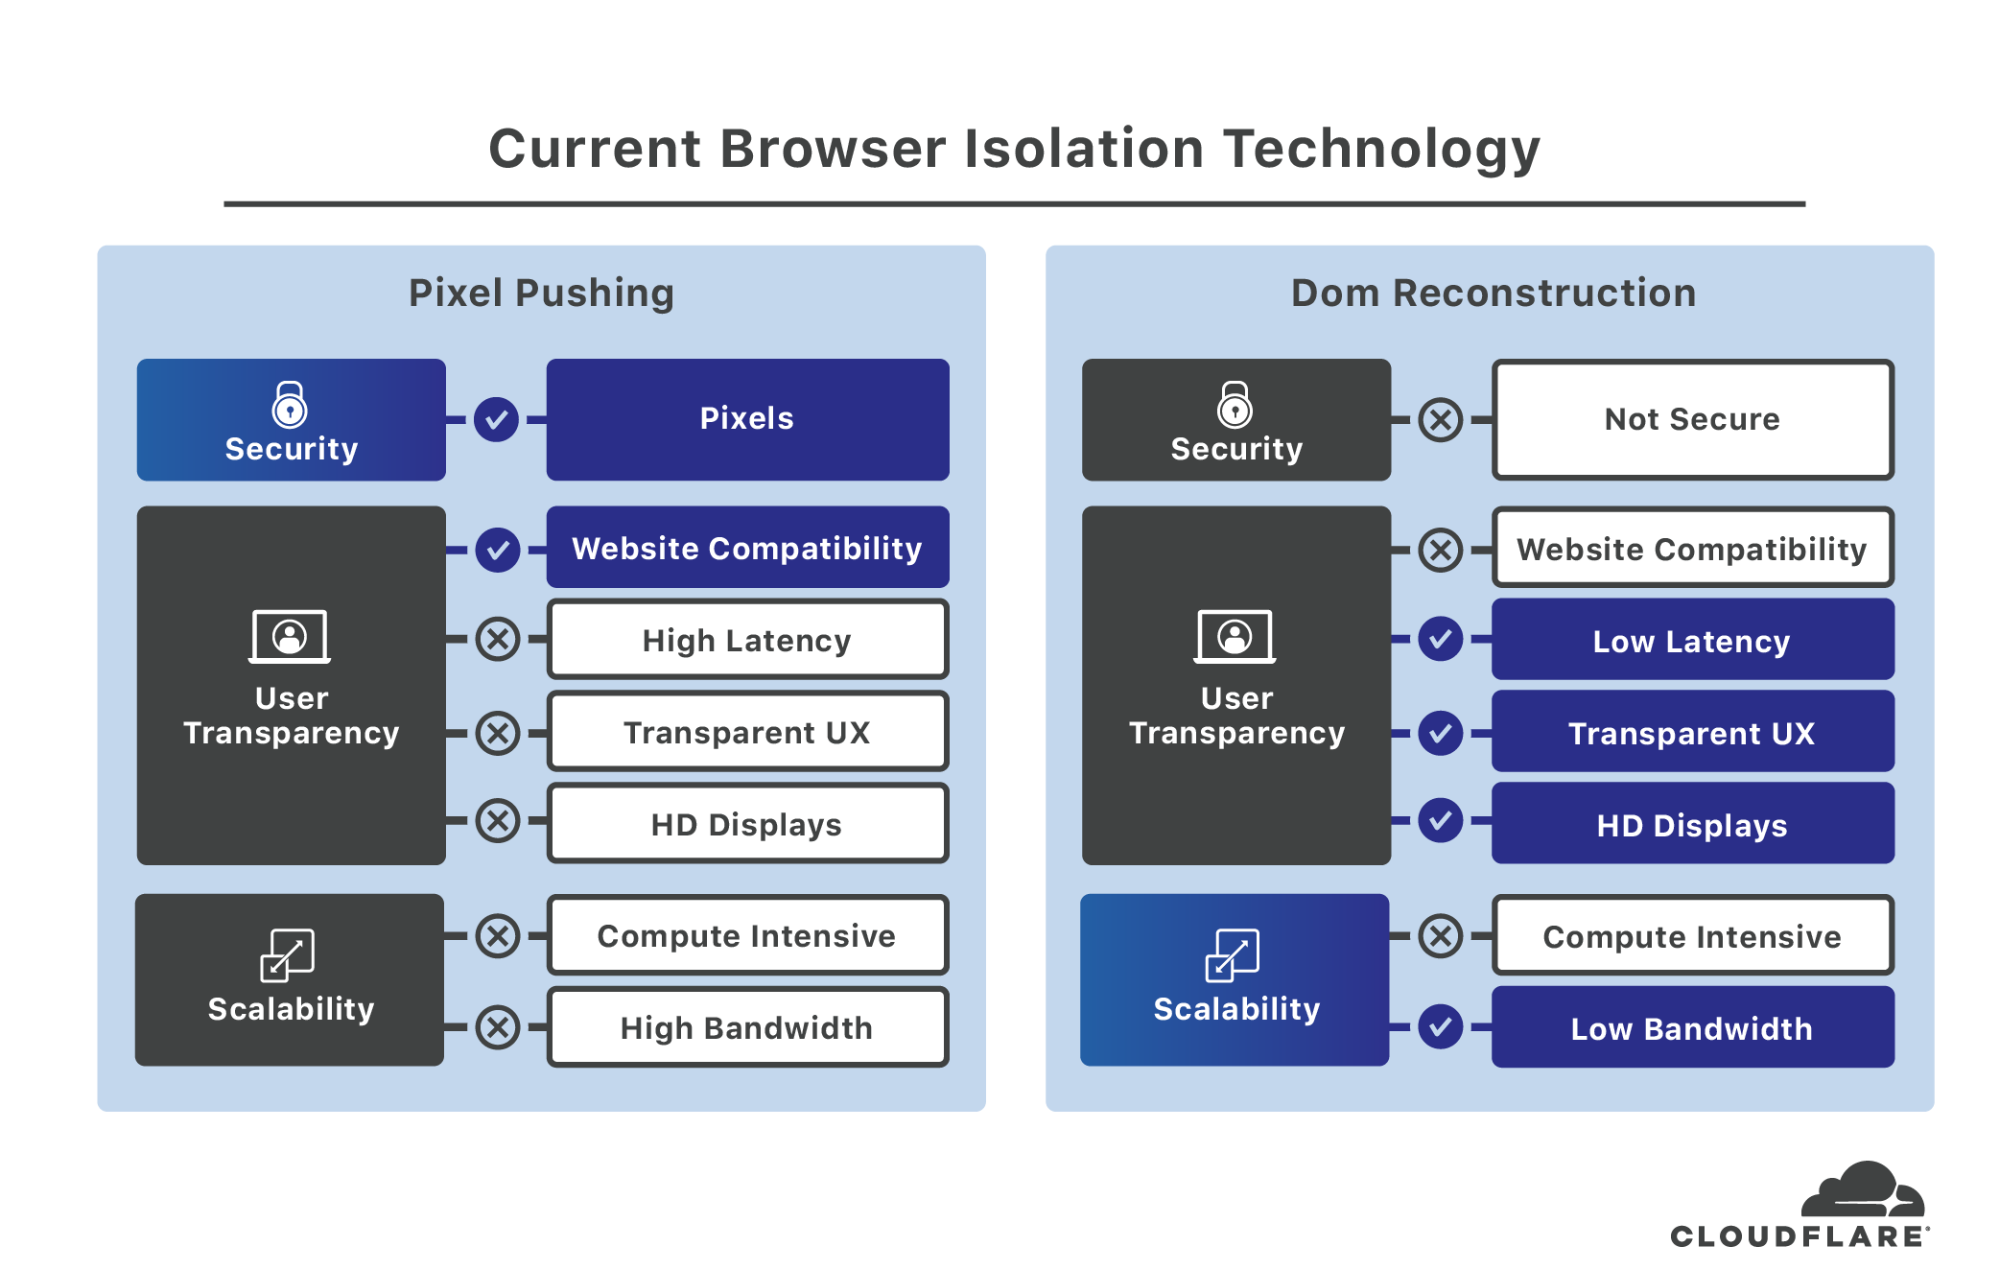 Cloudflare + Remote Browser Isolation